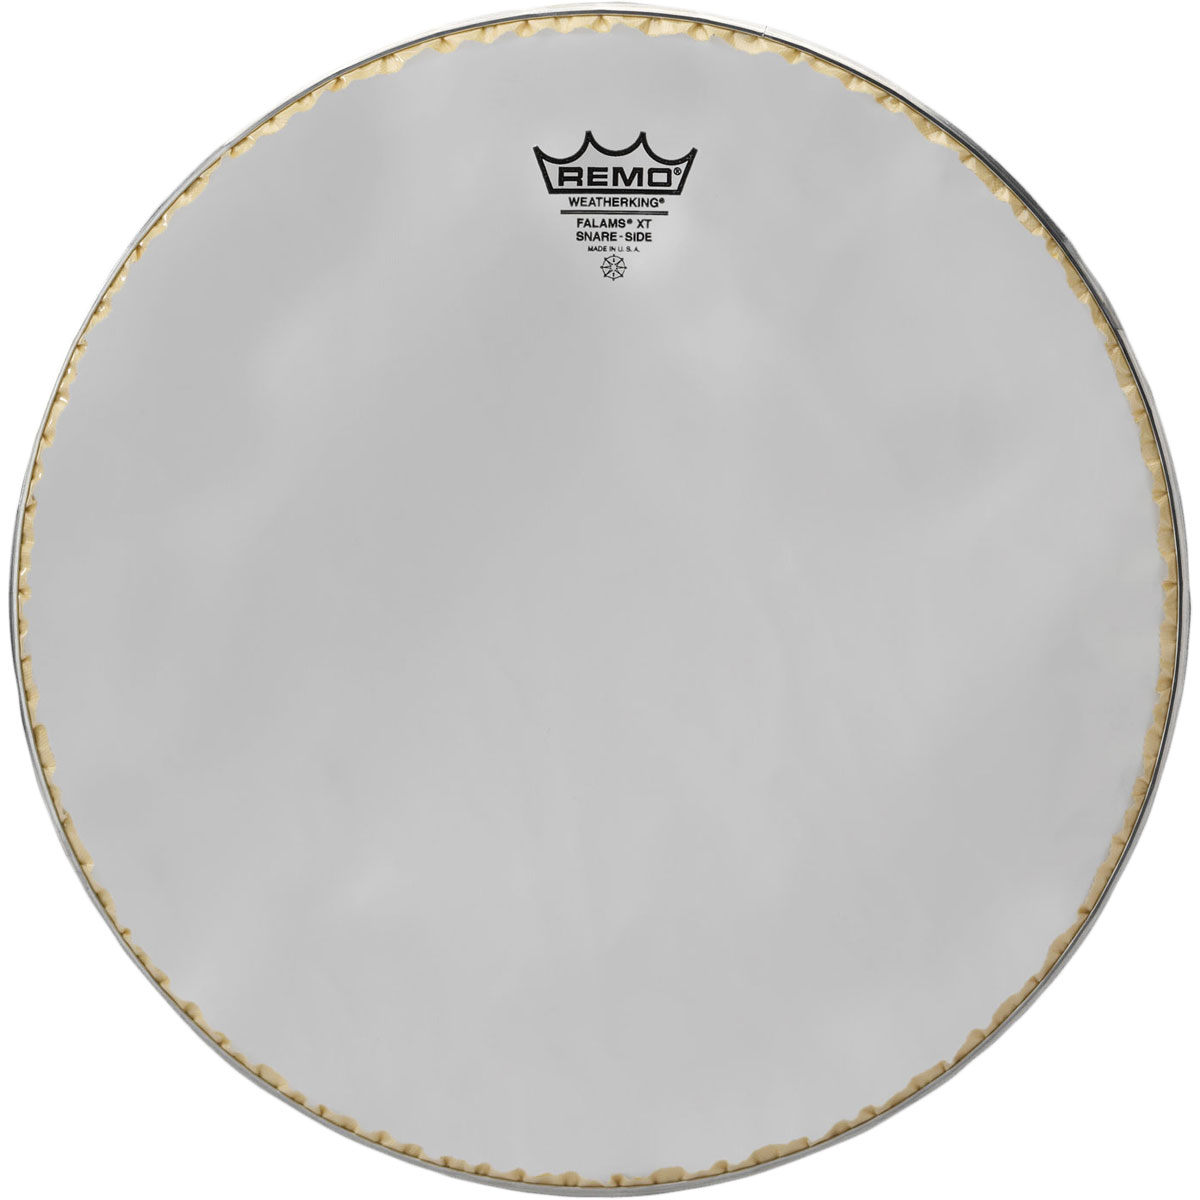 "Remo 14"" Falams XT Marching Snare Side (Bottom) Drum Head"